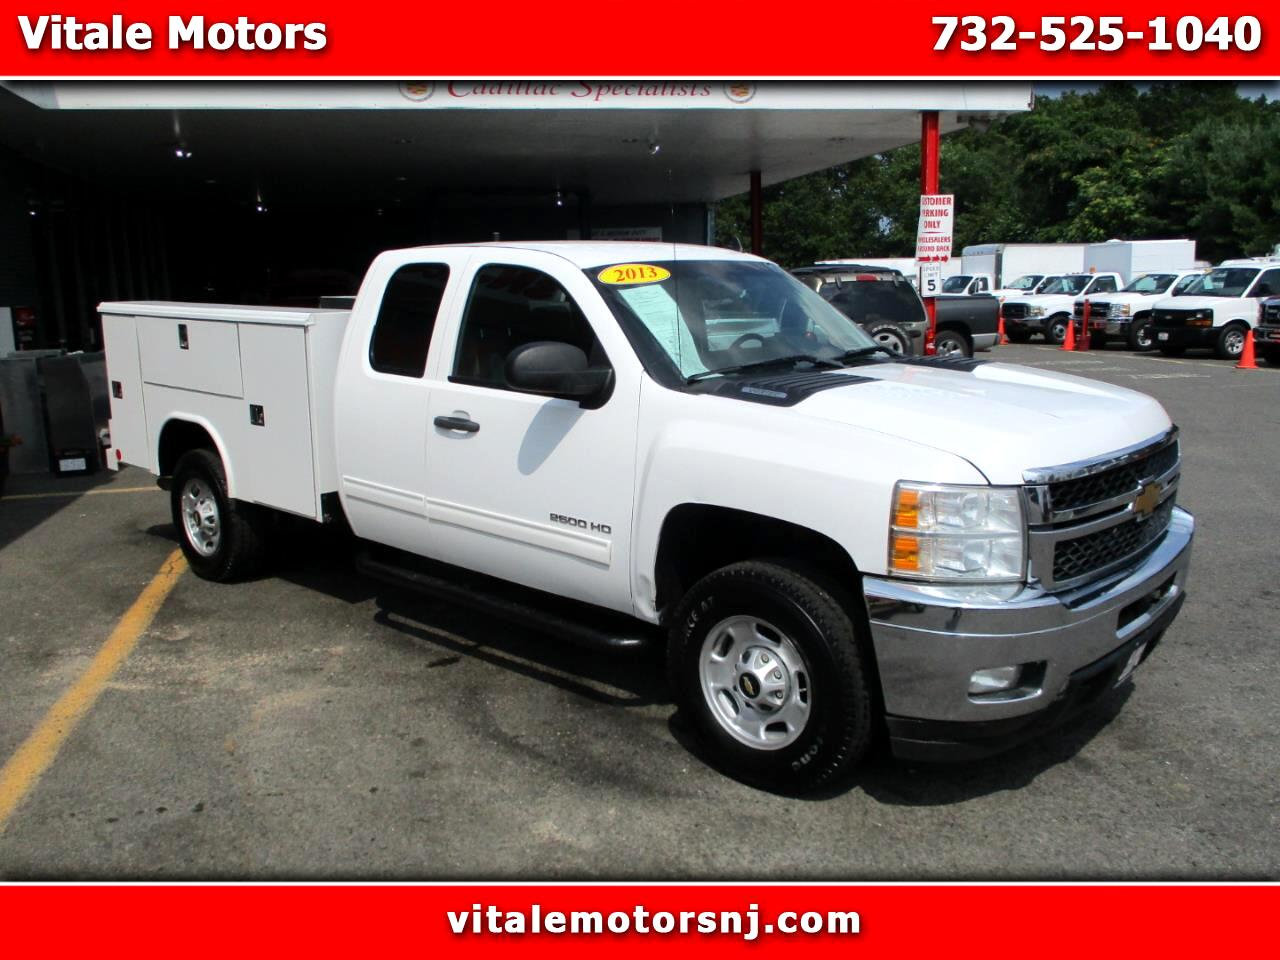 2013 Chevrolet Silverado 2500HD EXT CAB 4X4 UTILITY BODY